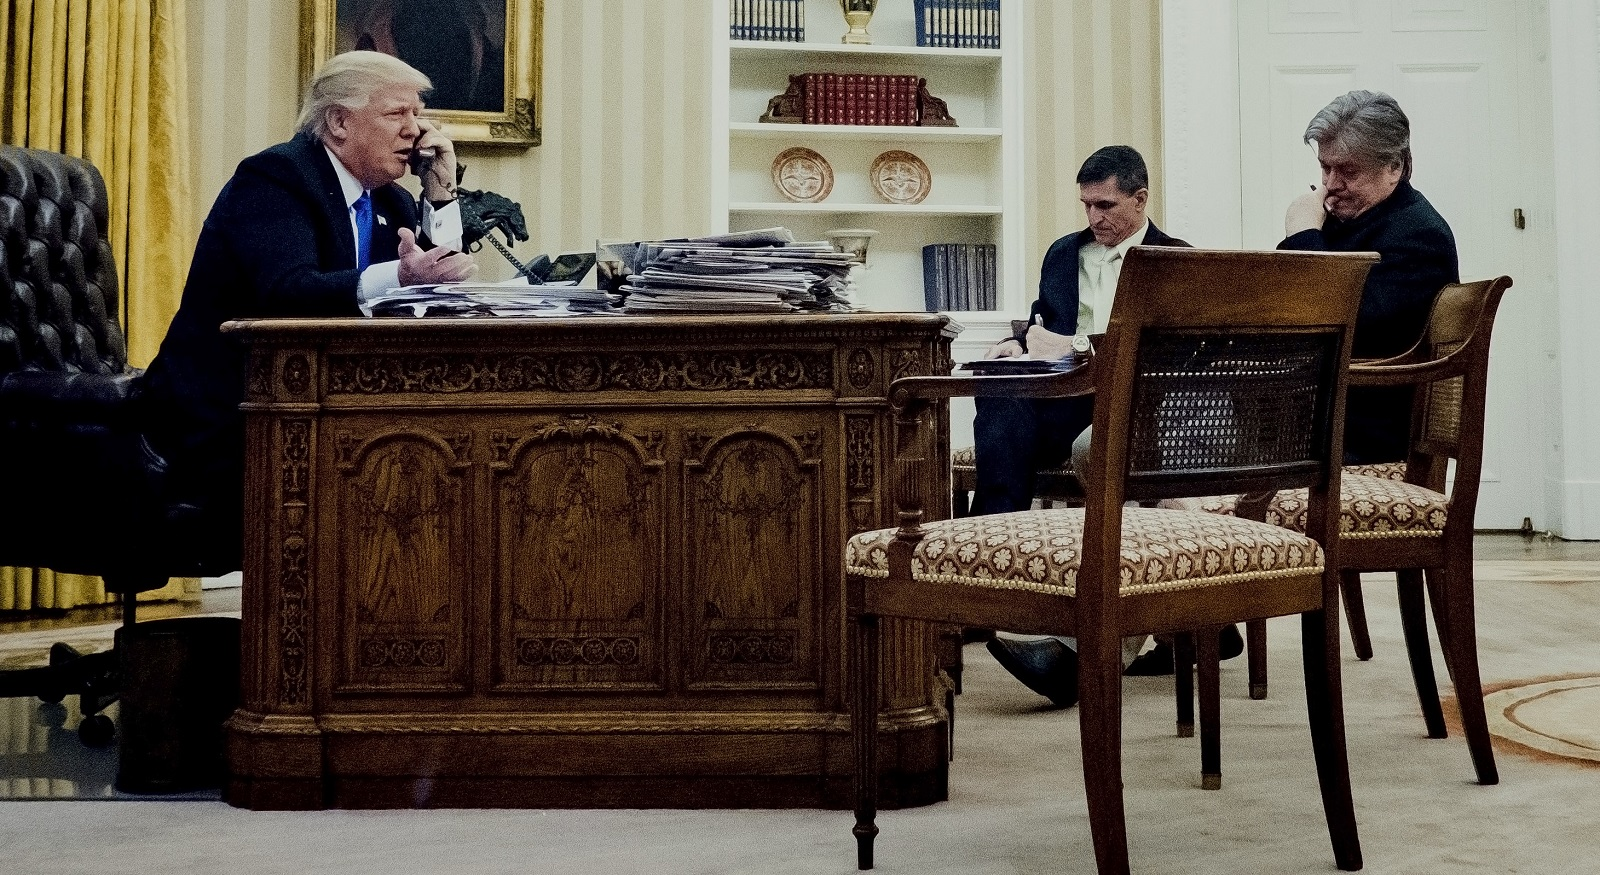 US President Donald Trump on the phone with Malcolm Turnbull on 28 January (Photo: Pete Marovich/Getty Images)